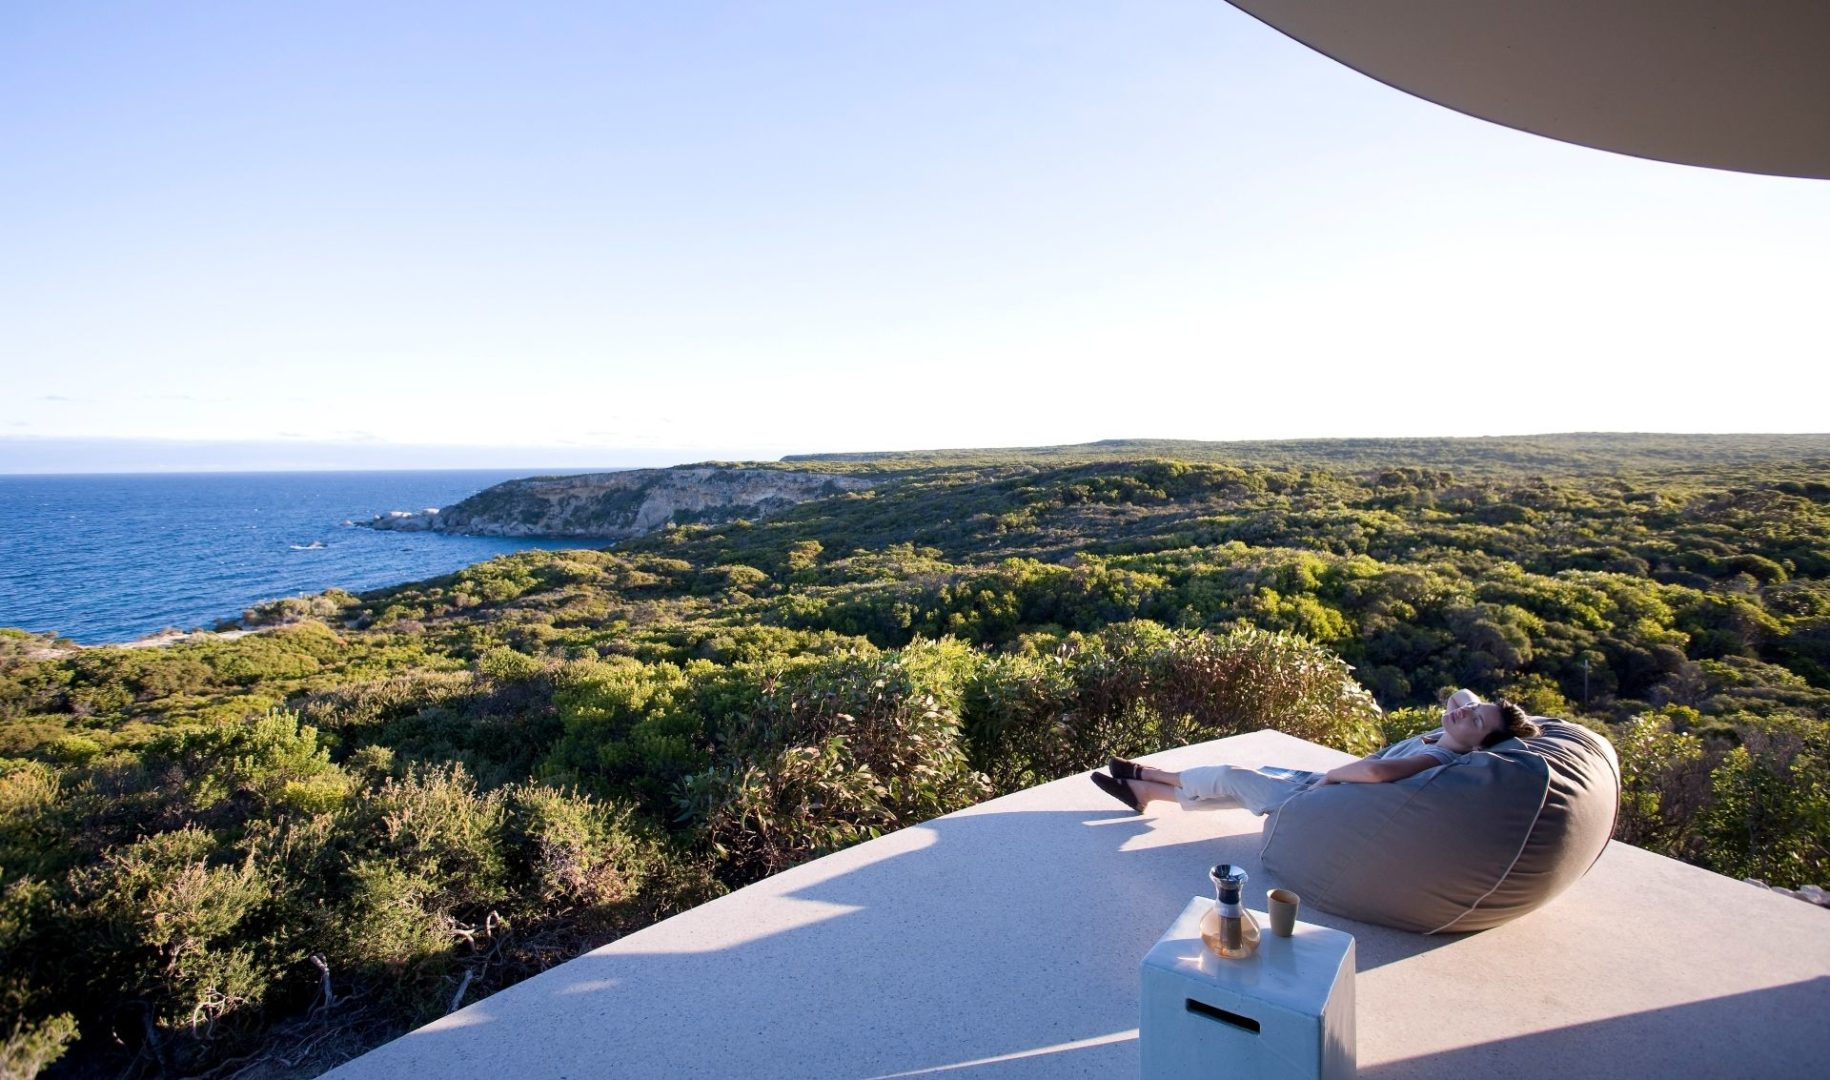 Relax and enjoy the peaceful surroundings